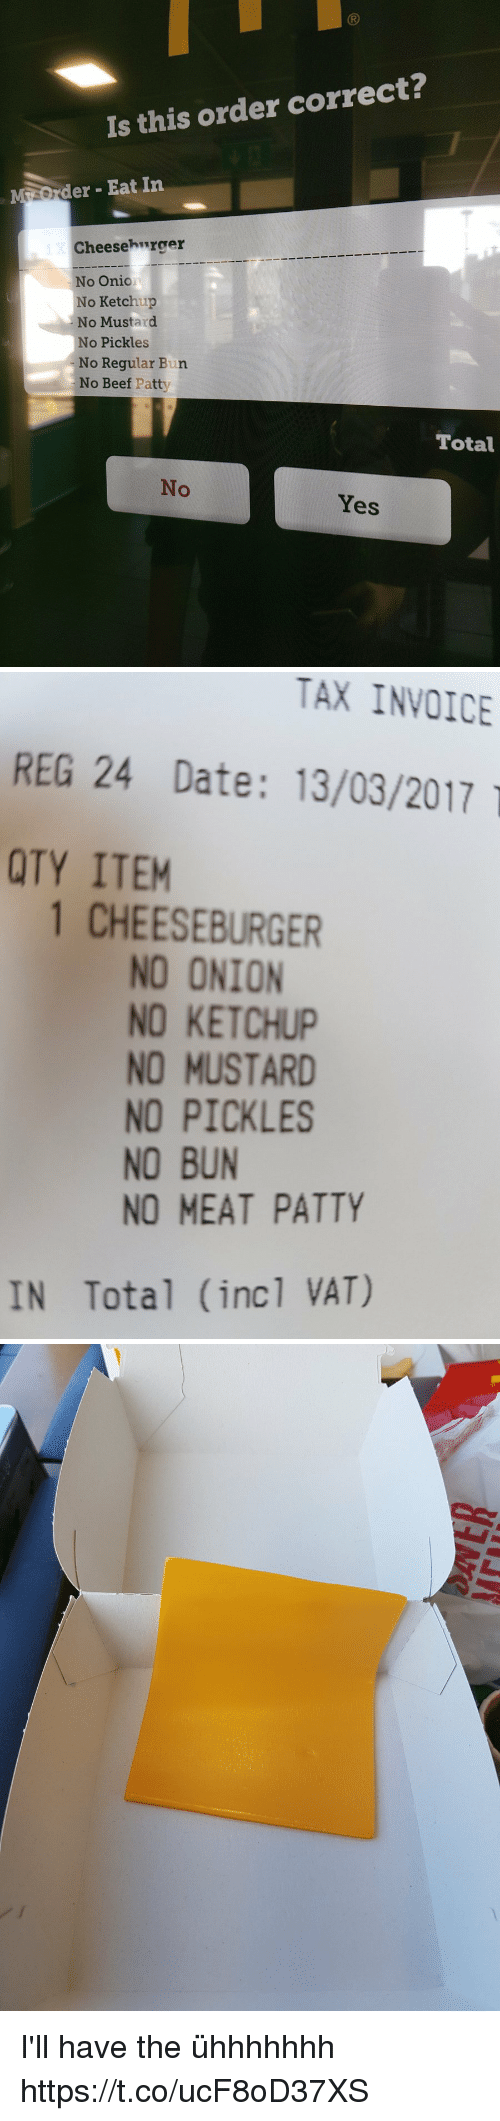 invoice: Is this order correct?  der Eat In  Cheesehurger  No Onic  No Ketchup  No Mustard  No Pickles  No Regular Bun  No Beef Patty  Total  No  Yes   TAX INVOICE  REG 24 Date: 13/03/2017  QTY ITEM  1 CHEESEBURGER  NO ONION  NO KETCHUP  NO MUSTARD  NO PICKLES  NO BUN  NO MEAT PATTY  IN Total (inc1 VAT) I'll have the ühhhhhhh https://t.co/ucF8oD37XS